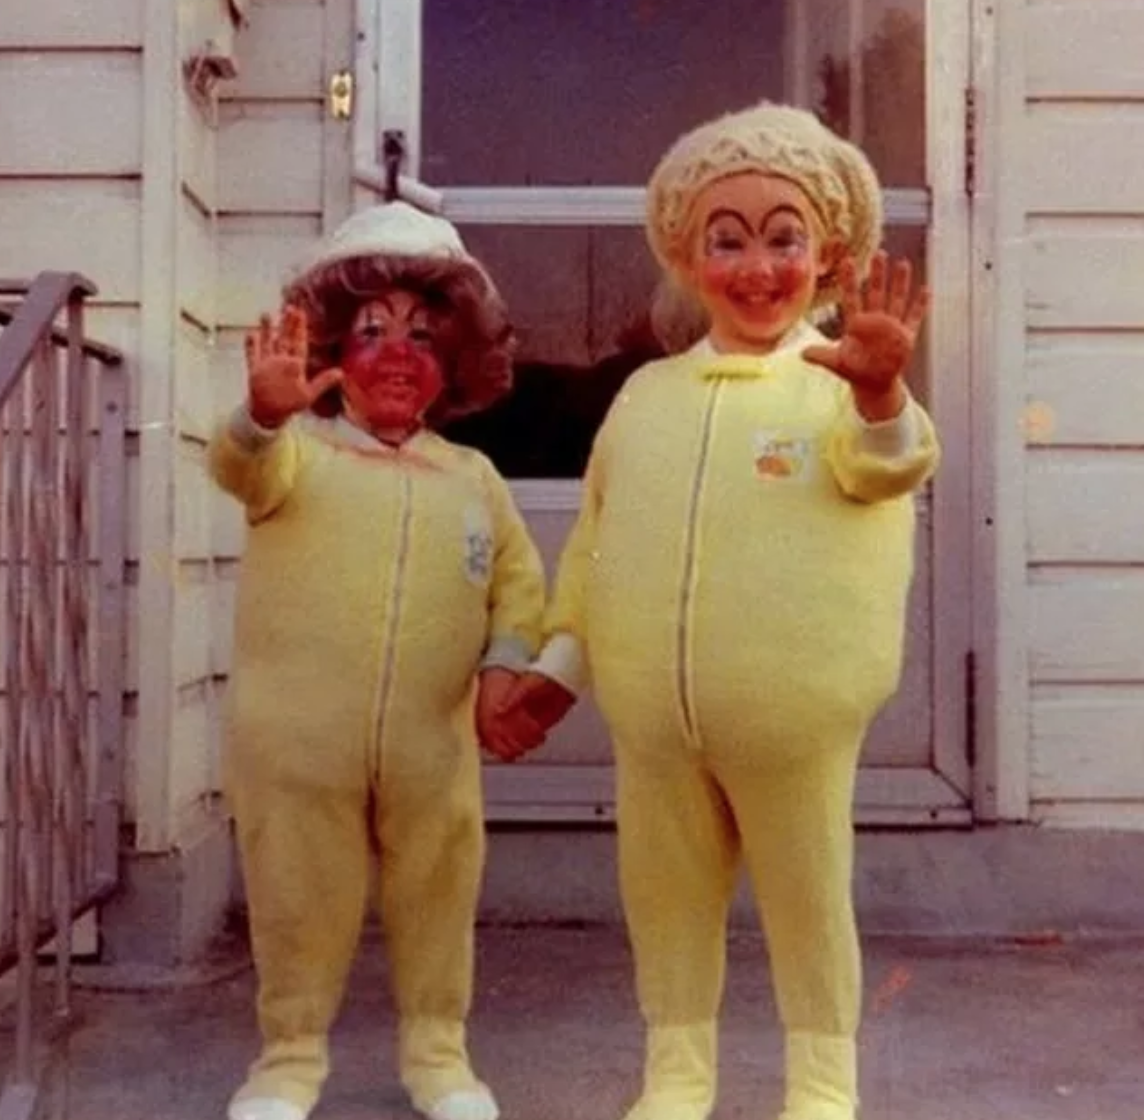 two yellow terrifying vintage halloween costumes, two children in creepy vintage halloween costumes, vintage halloween costumes, vintage halloween costume, creepy halloween costumes, creepy halloween costume, the creepiest halloween costumes, terrifying halloween costumes, creepiest costumes, vintage halloween pics, retro halloween dress, vintage halloween clothing, creepiest halloween costumes, vintage halloween pictures, retro halloween costume, most terrifying halloween costumes, most creepy halloween costumes, creepiest vintage costumes, creepy vintage costumes, creepy retro costumes, creepiest costumes, retro halloween pictures, vintage halloween picture, retro halloween picture, creepy halloween picture, creepy halloween pictures